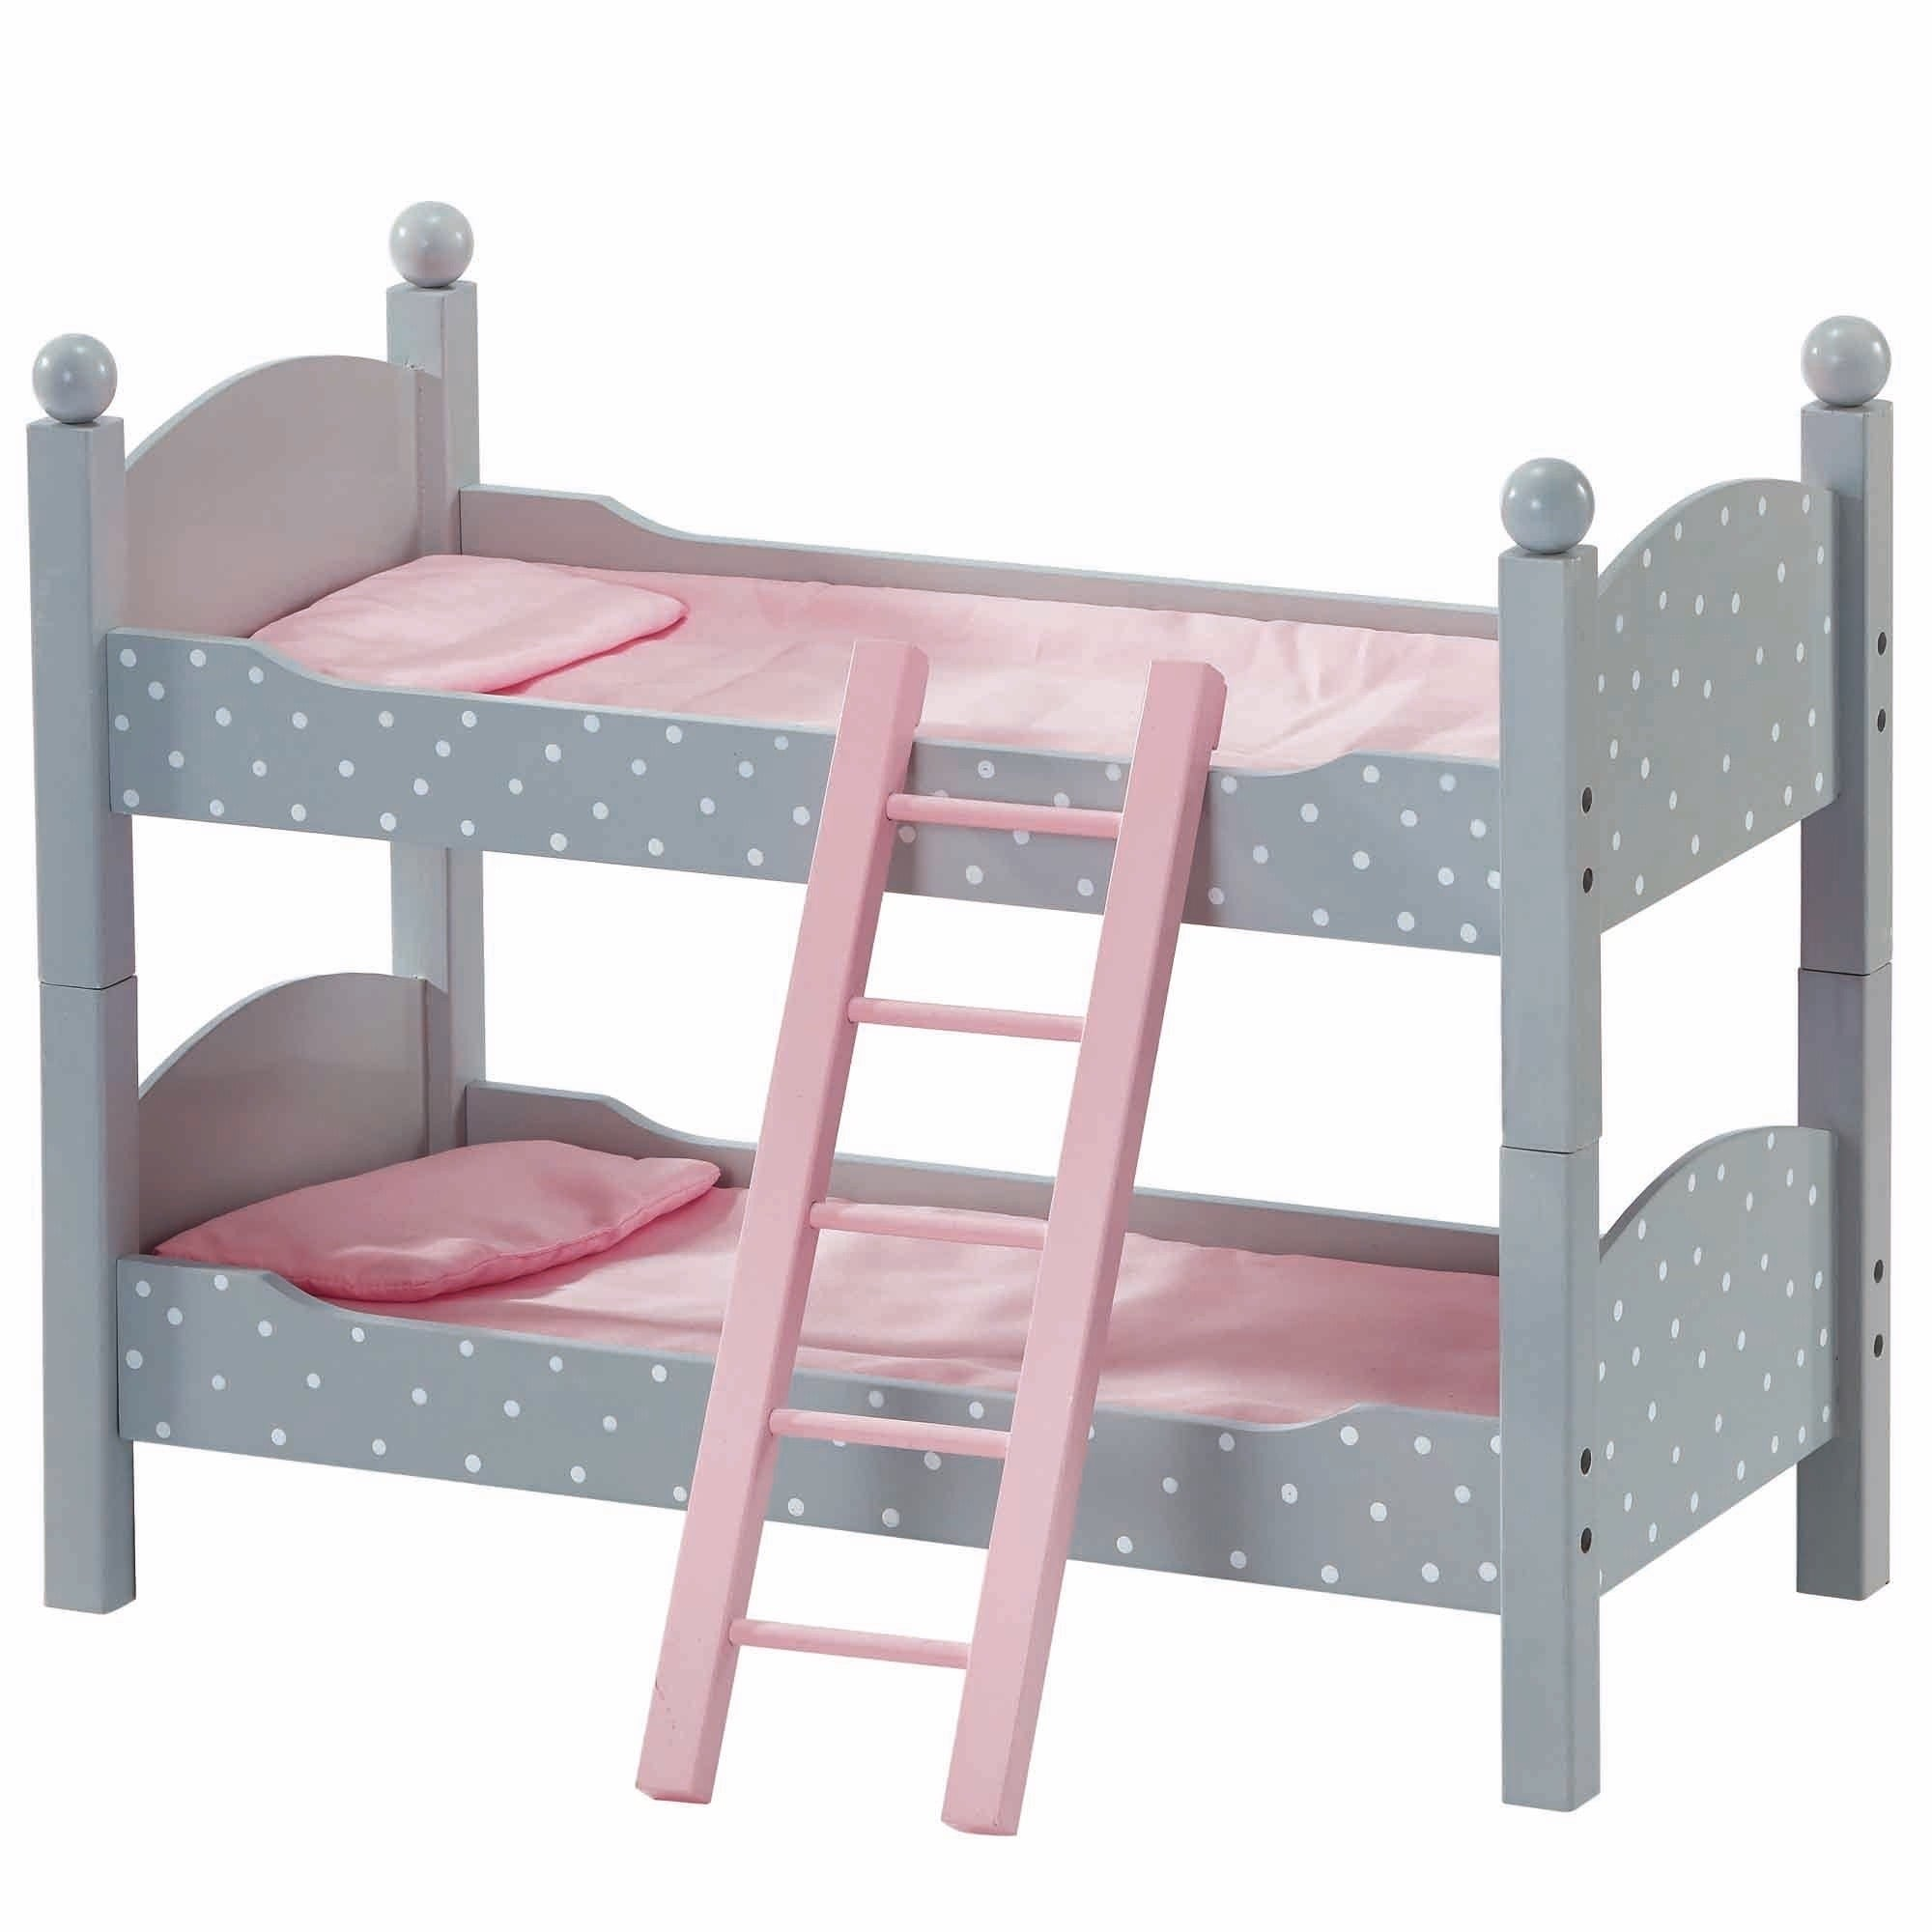 Teamson Olivia's Little World Double Bunk Bed 18-inch Dol...